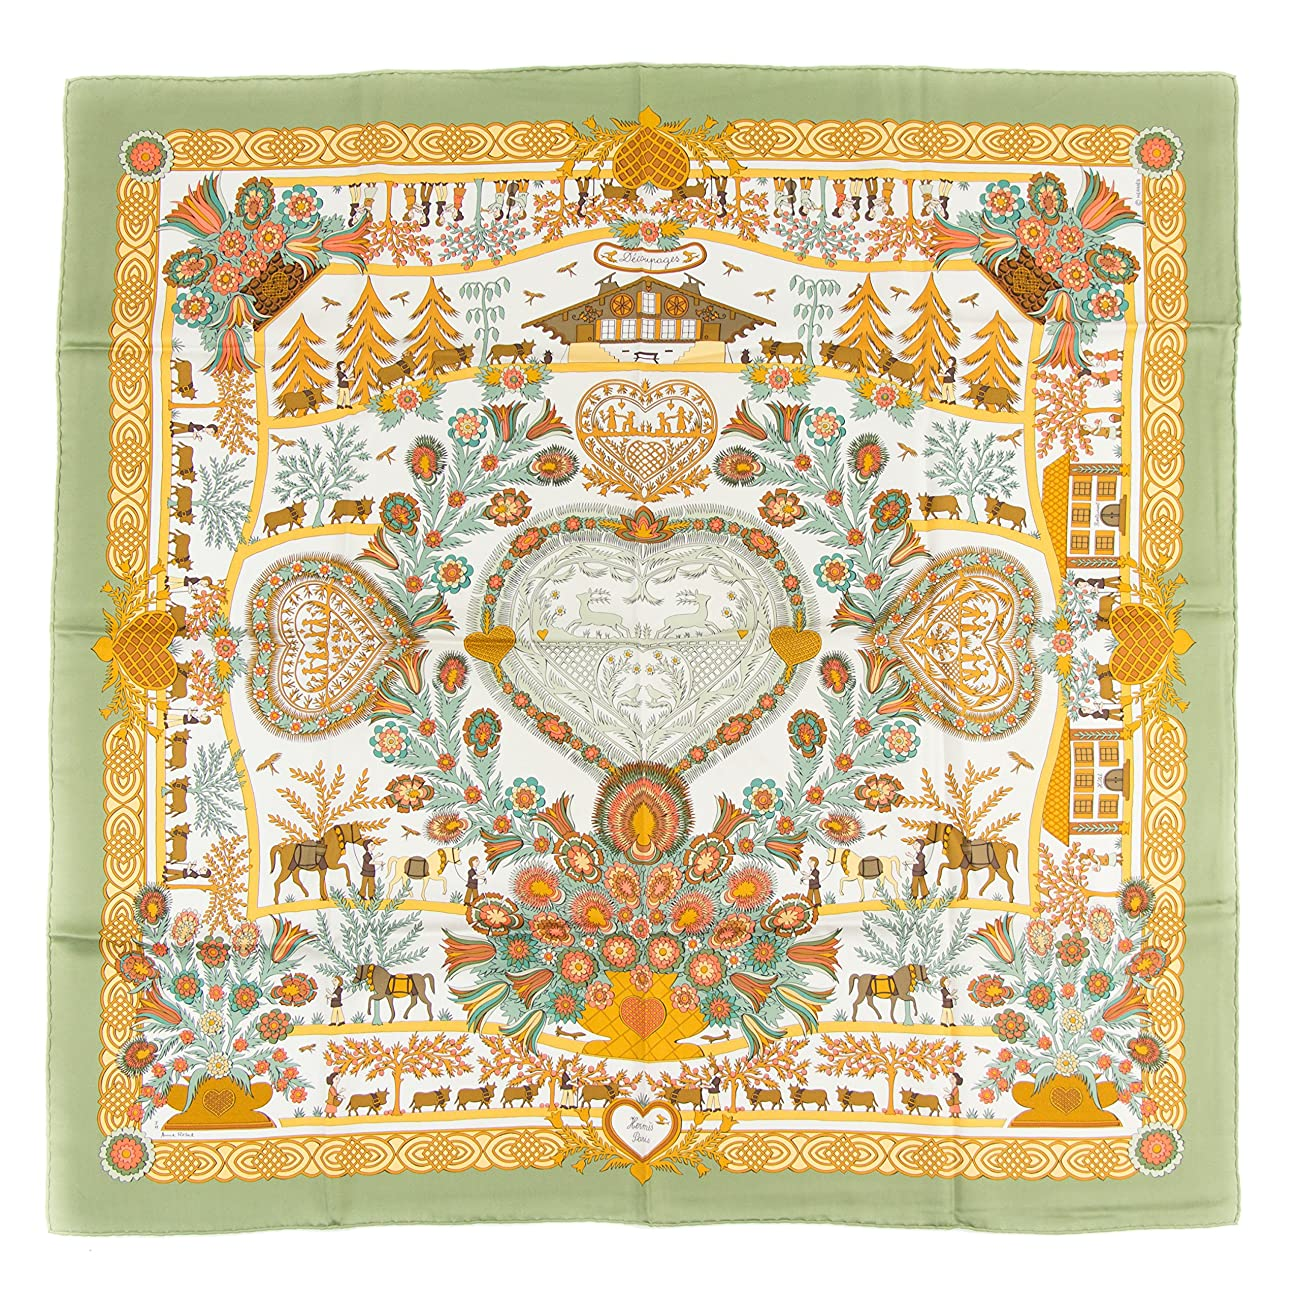 Hermes Vintage Scarf - Decoupages 0